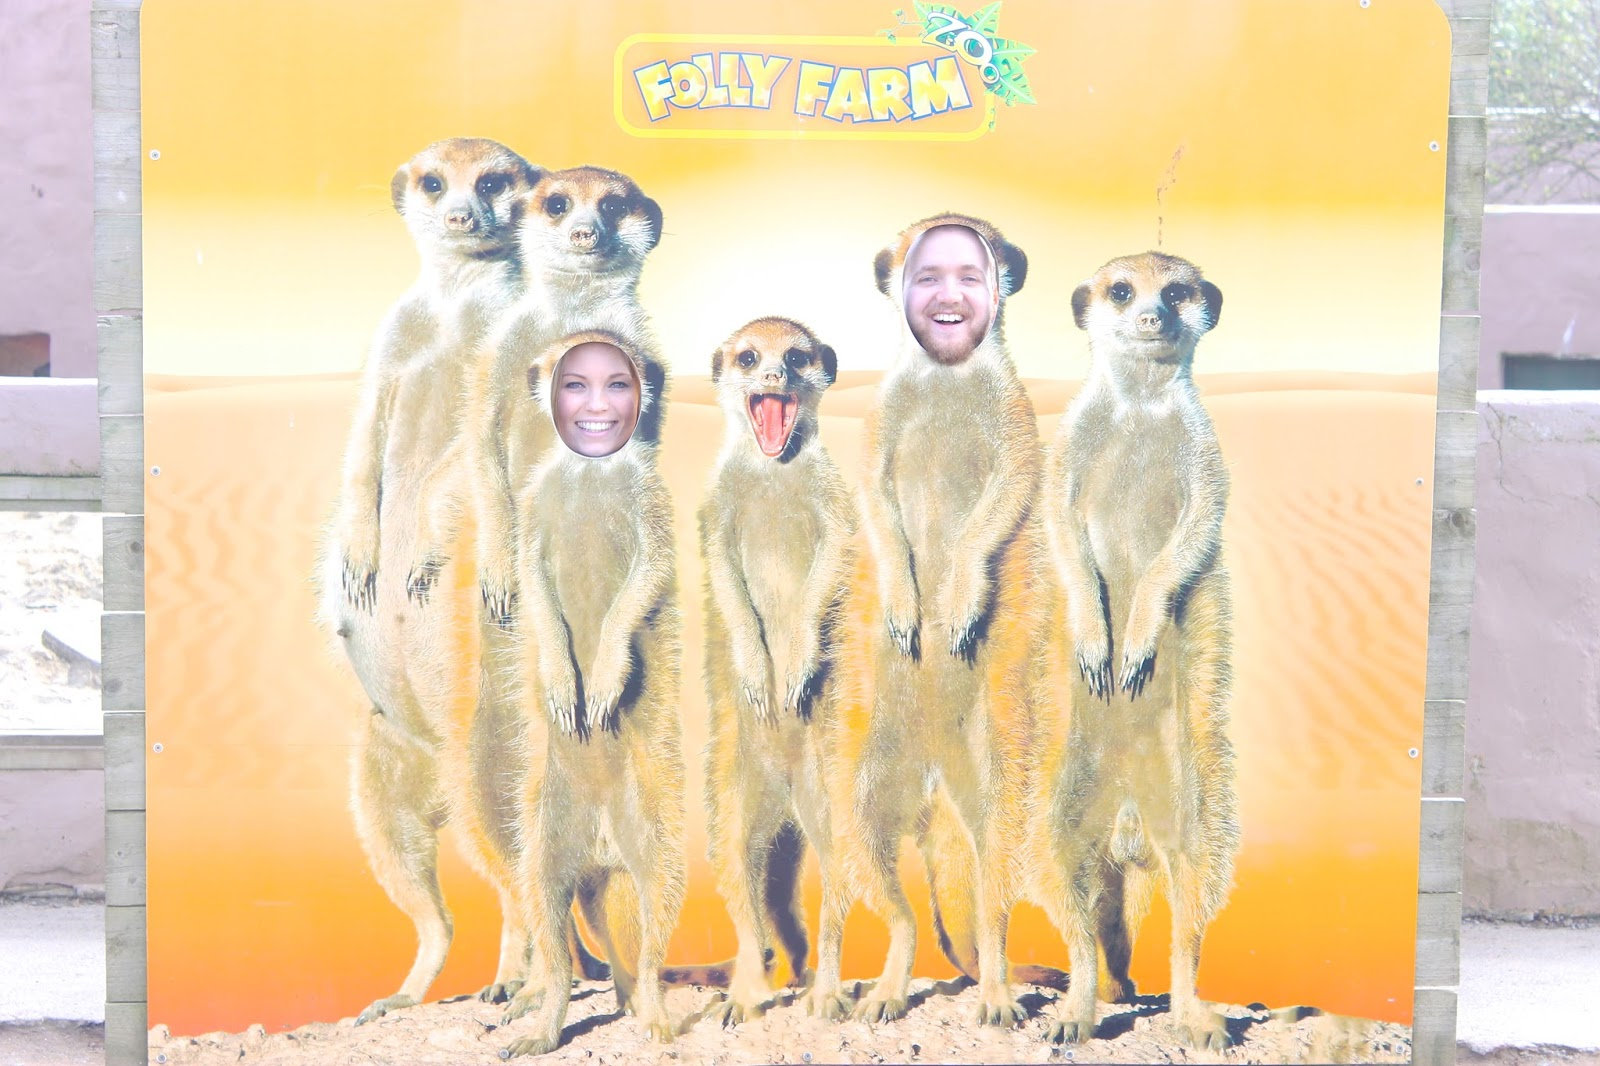 folly farm review, folly farm wales